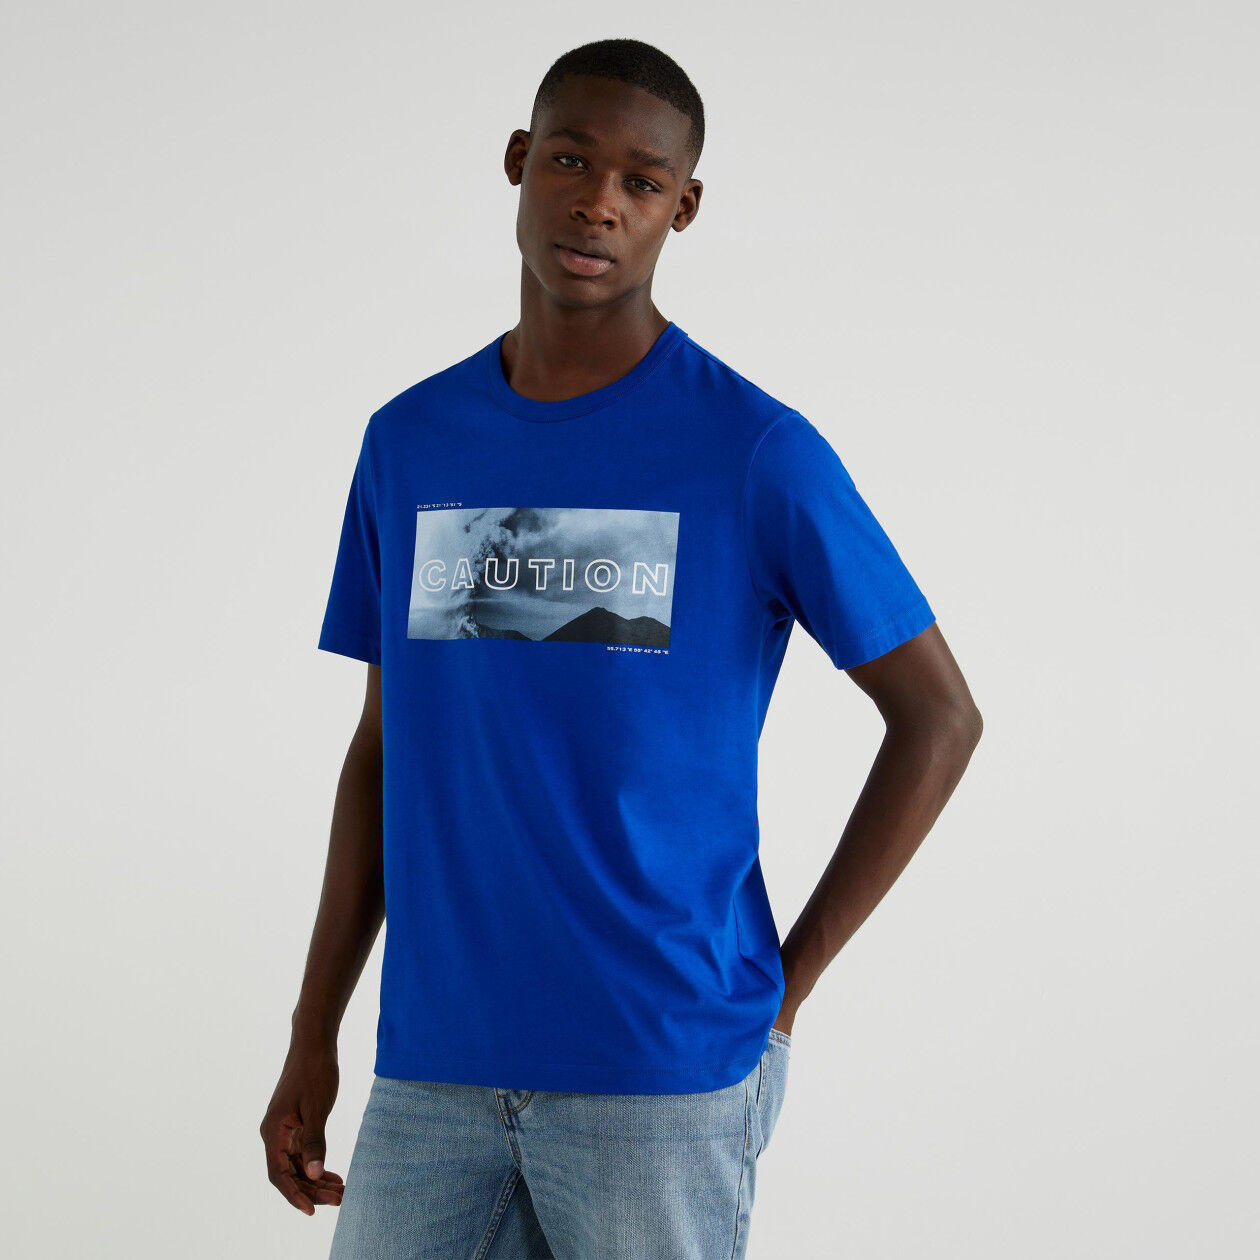 T-shirt with photographic print